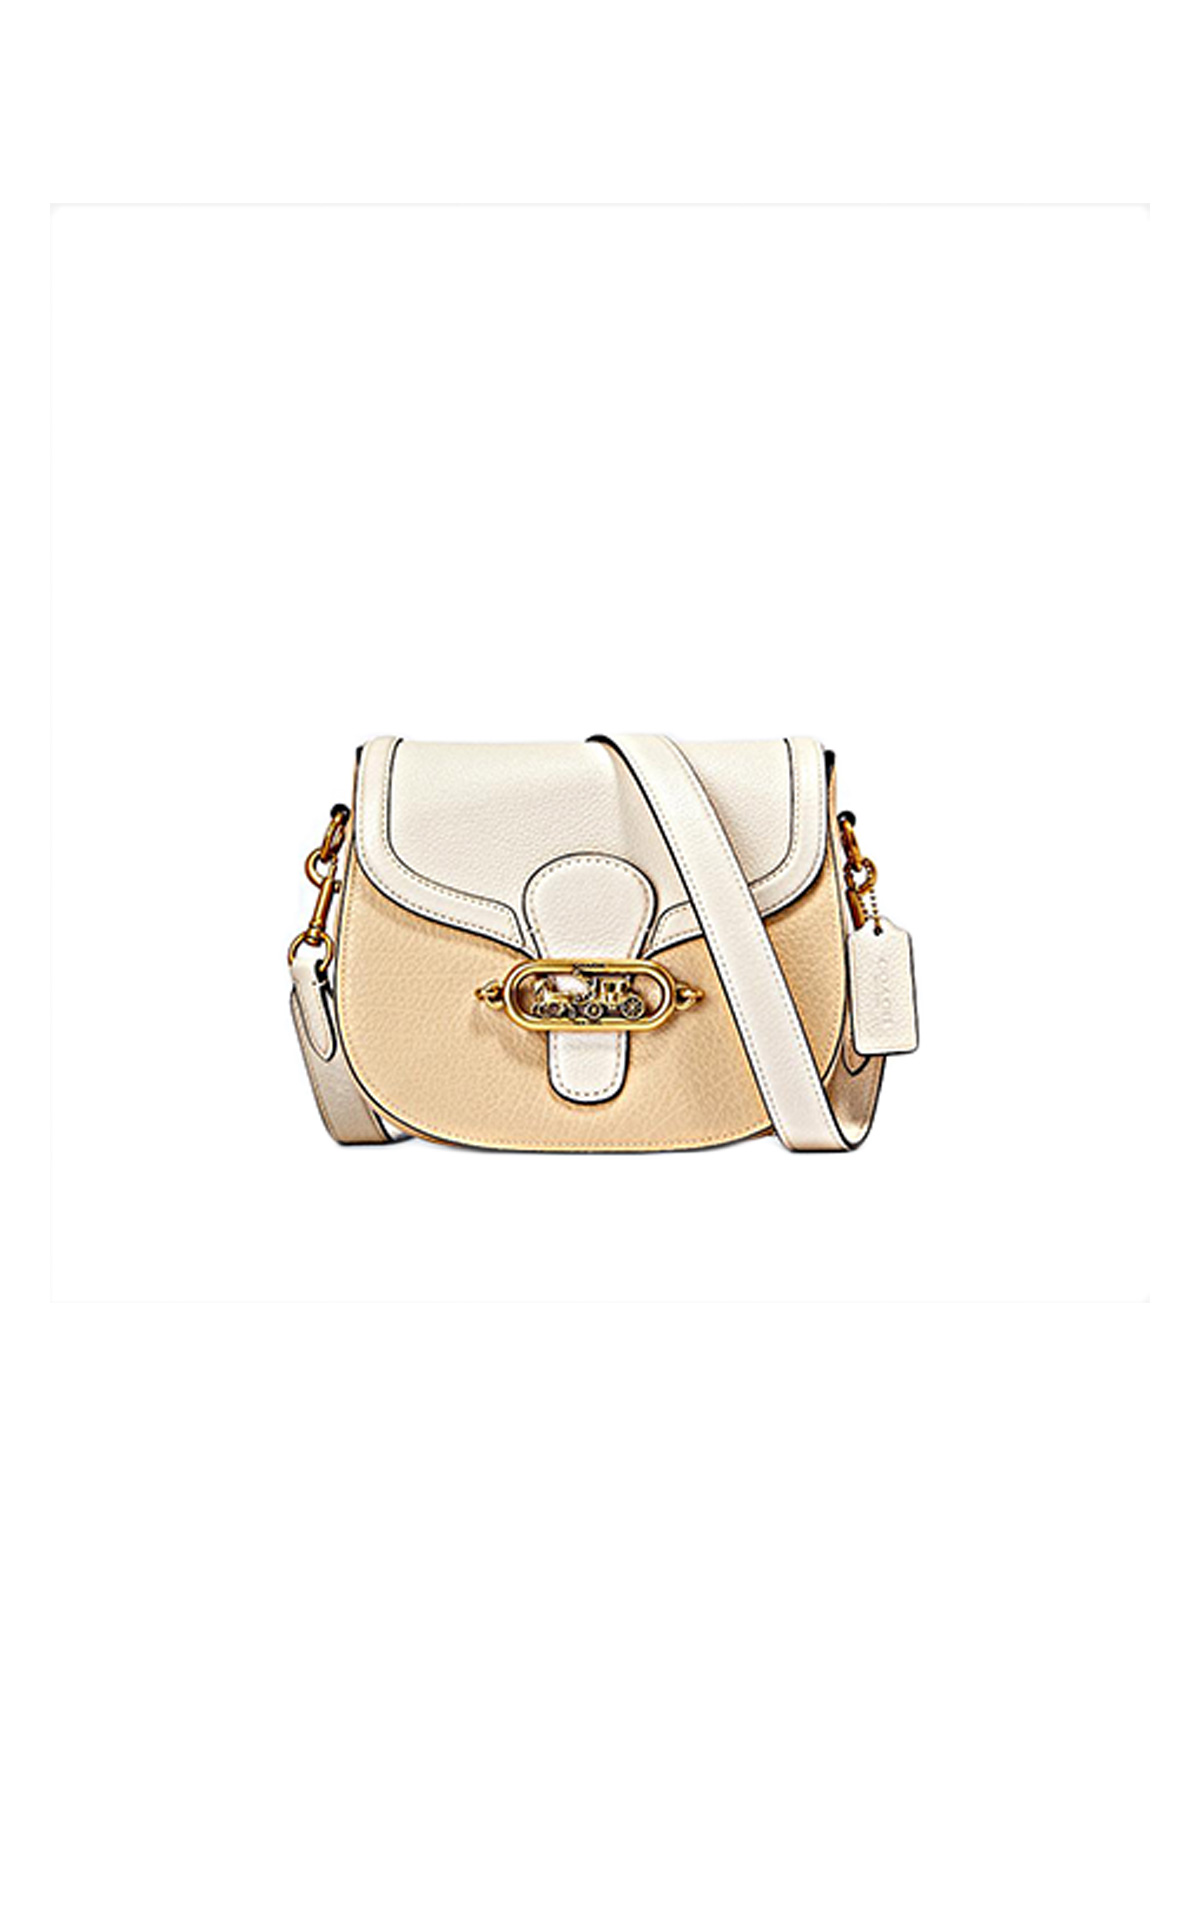 Black and beige Jade saddle bag Jennifer Lopez Coach